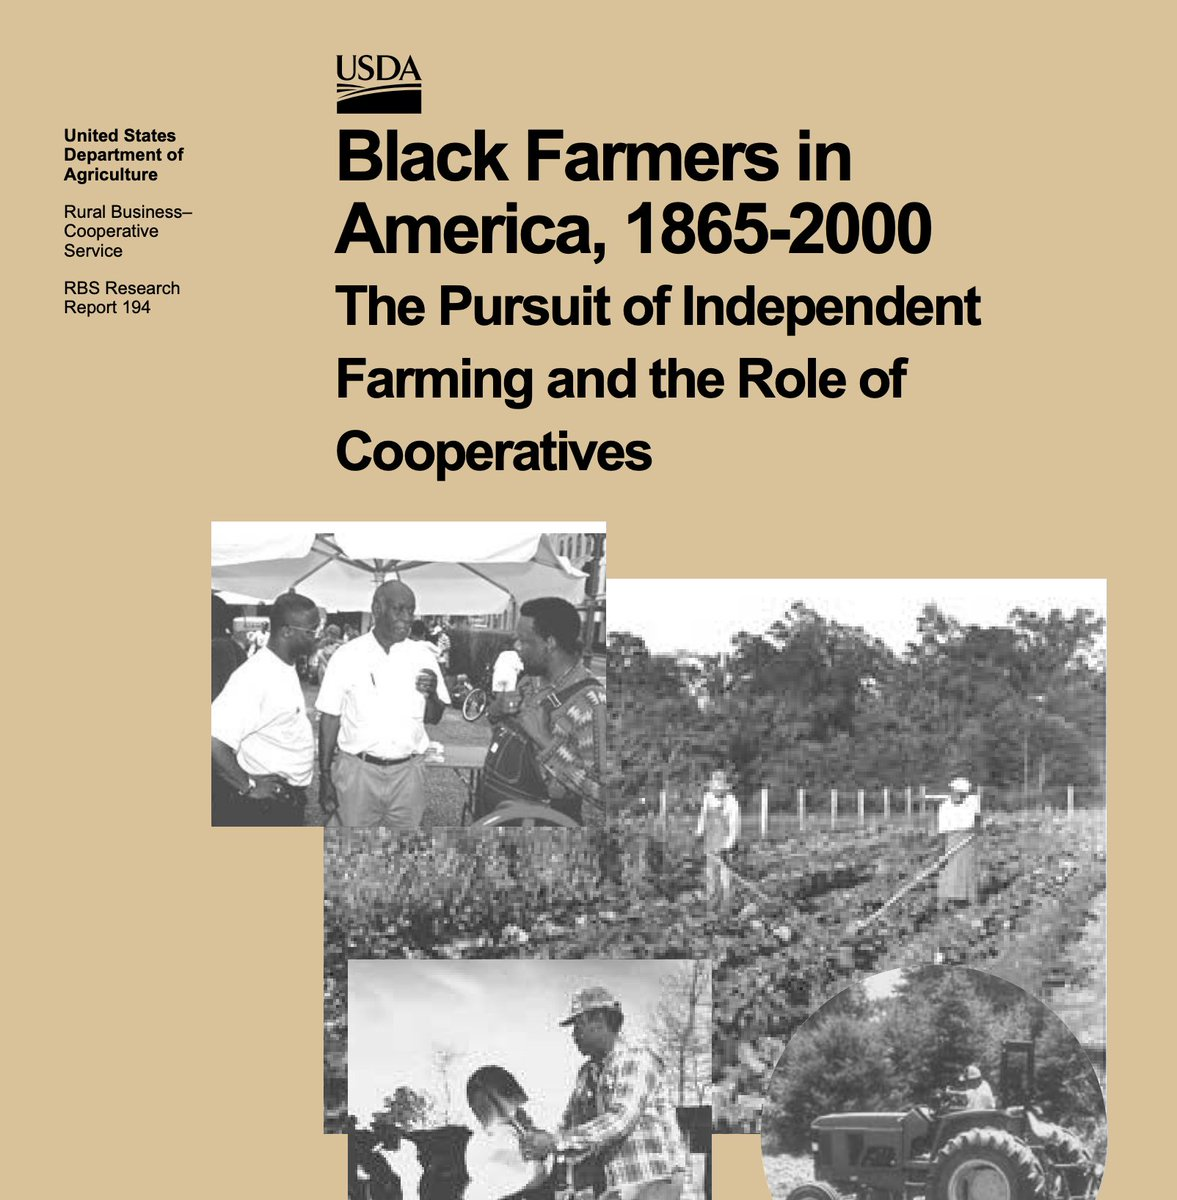 """Diminished civil rights also limited collective action strategies, such as cooperatives and unions. Even so, various types of cooperatives, including farmer associations, were organized in black farming communities prior to the 1960s."" https://t.co/T9JjMiT7RR #BlackHistory https://t.co/kWtNBRakJ4"